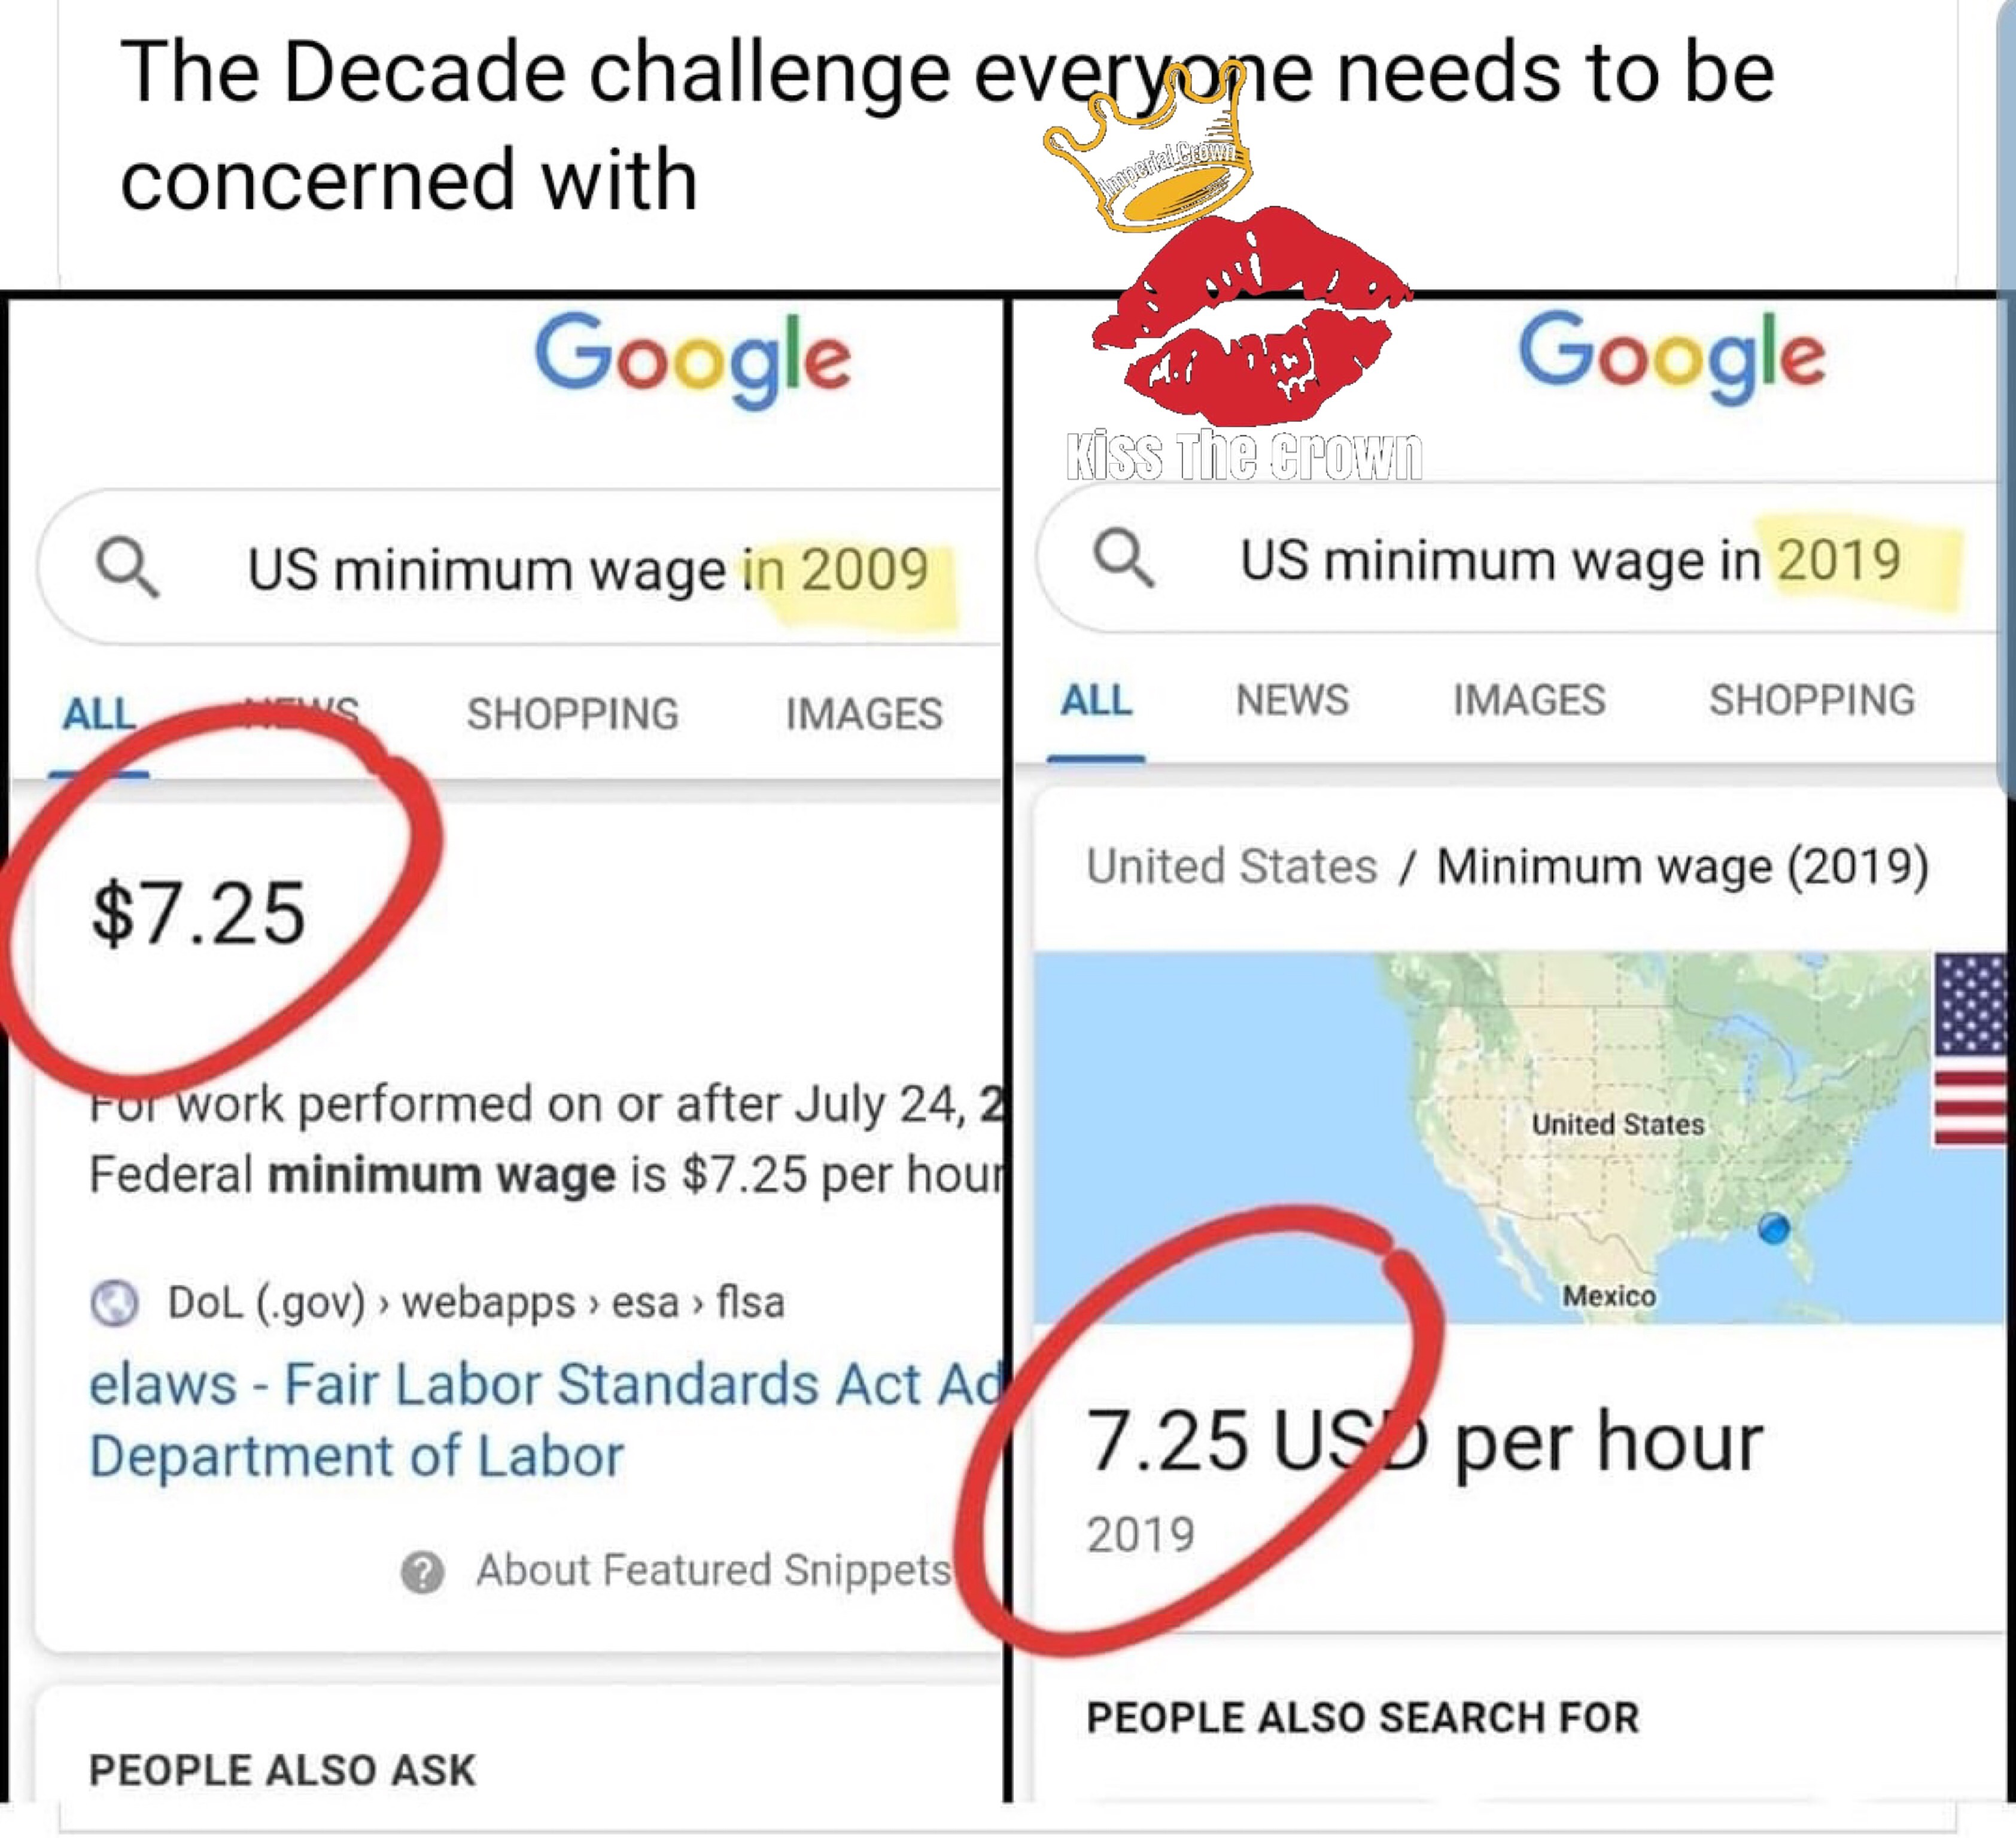 The decade challenge everyone needs to be concerned with